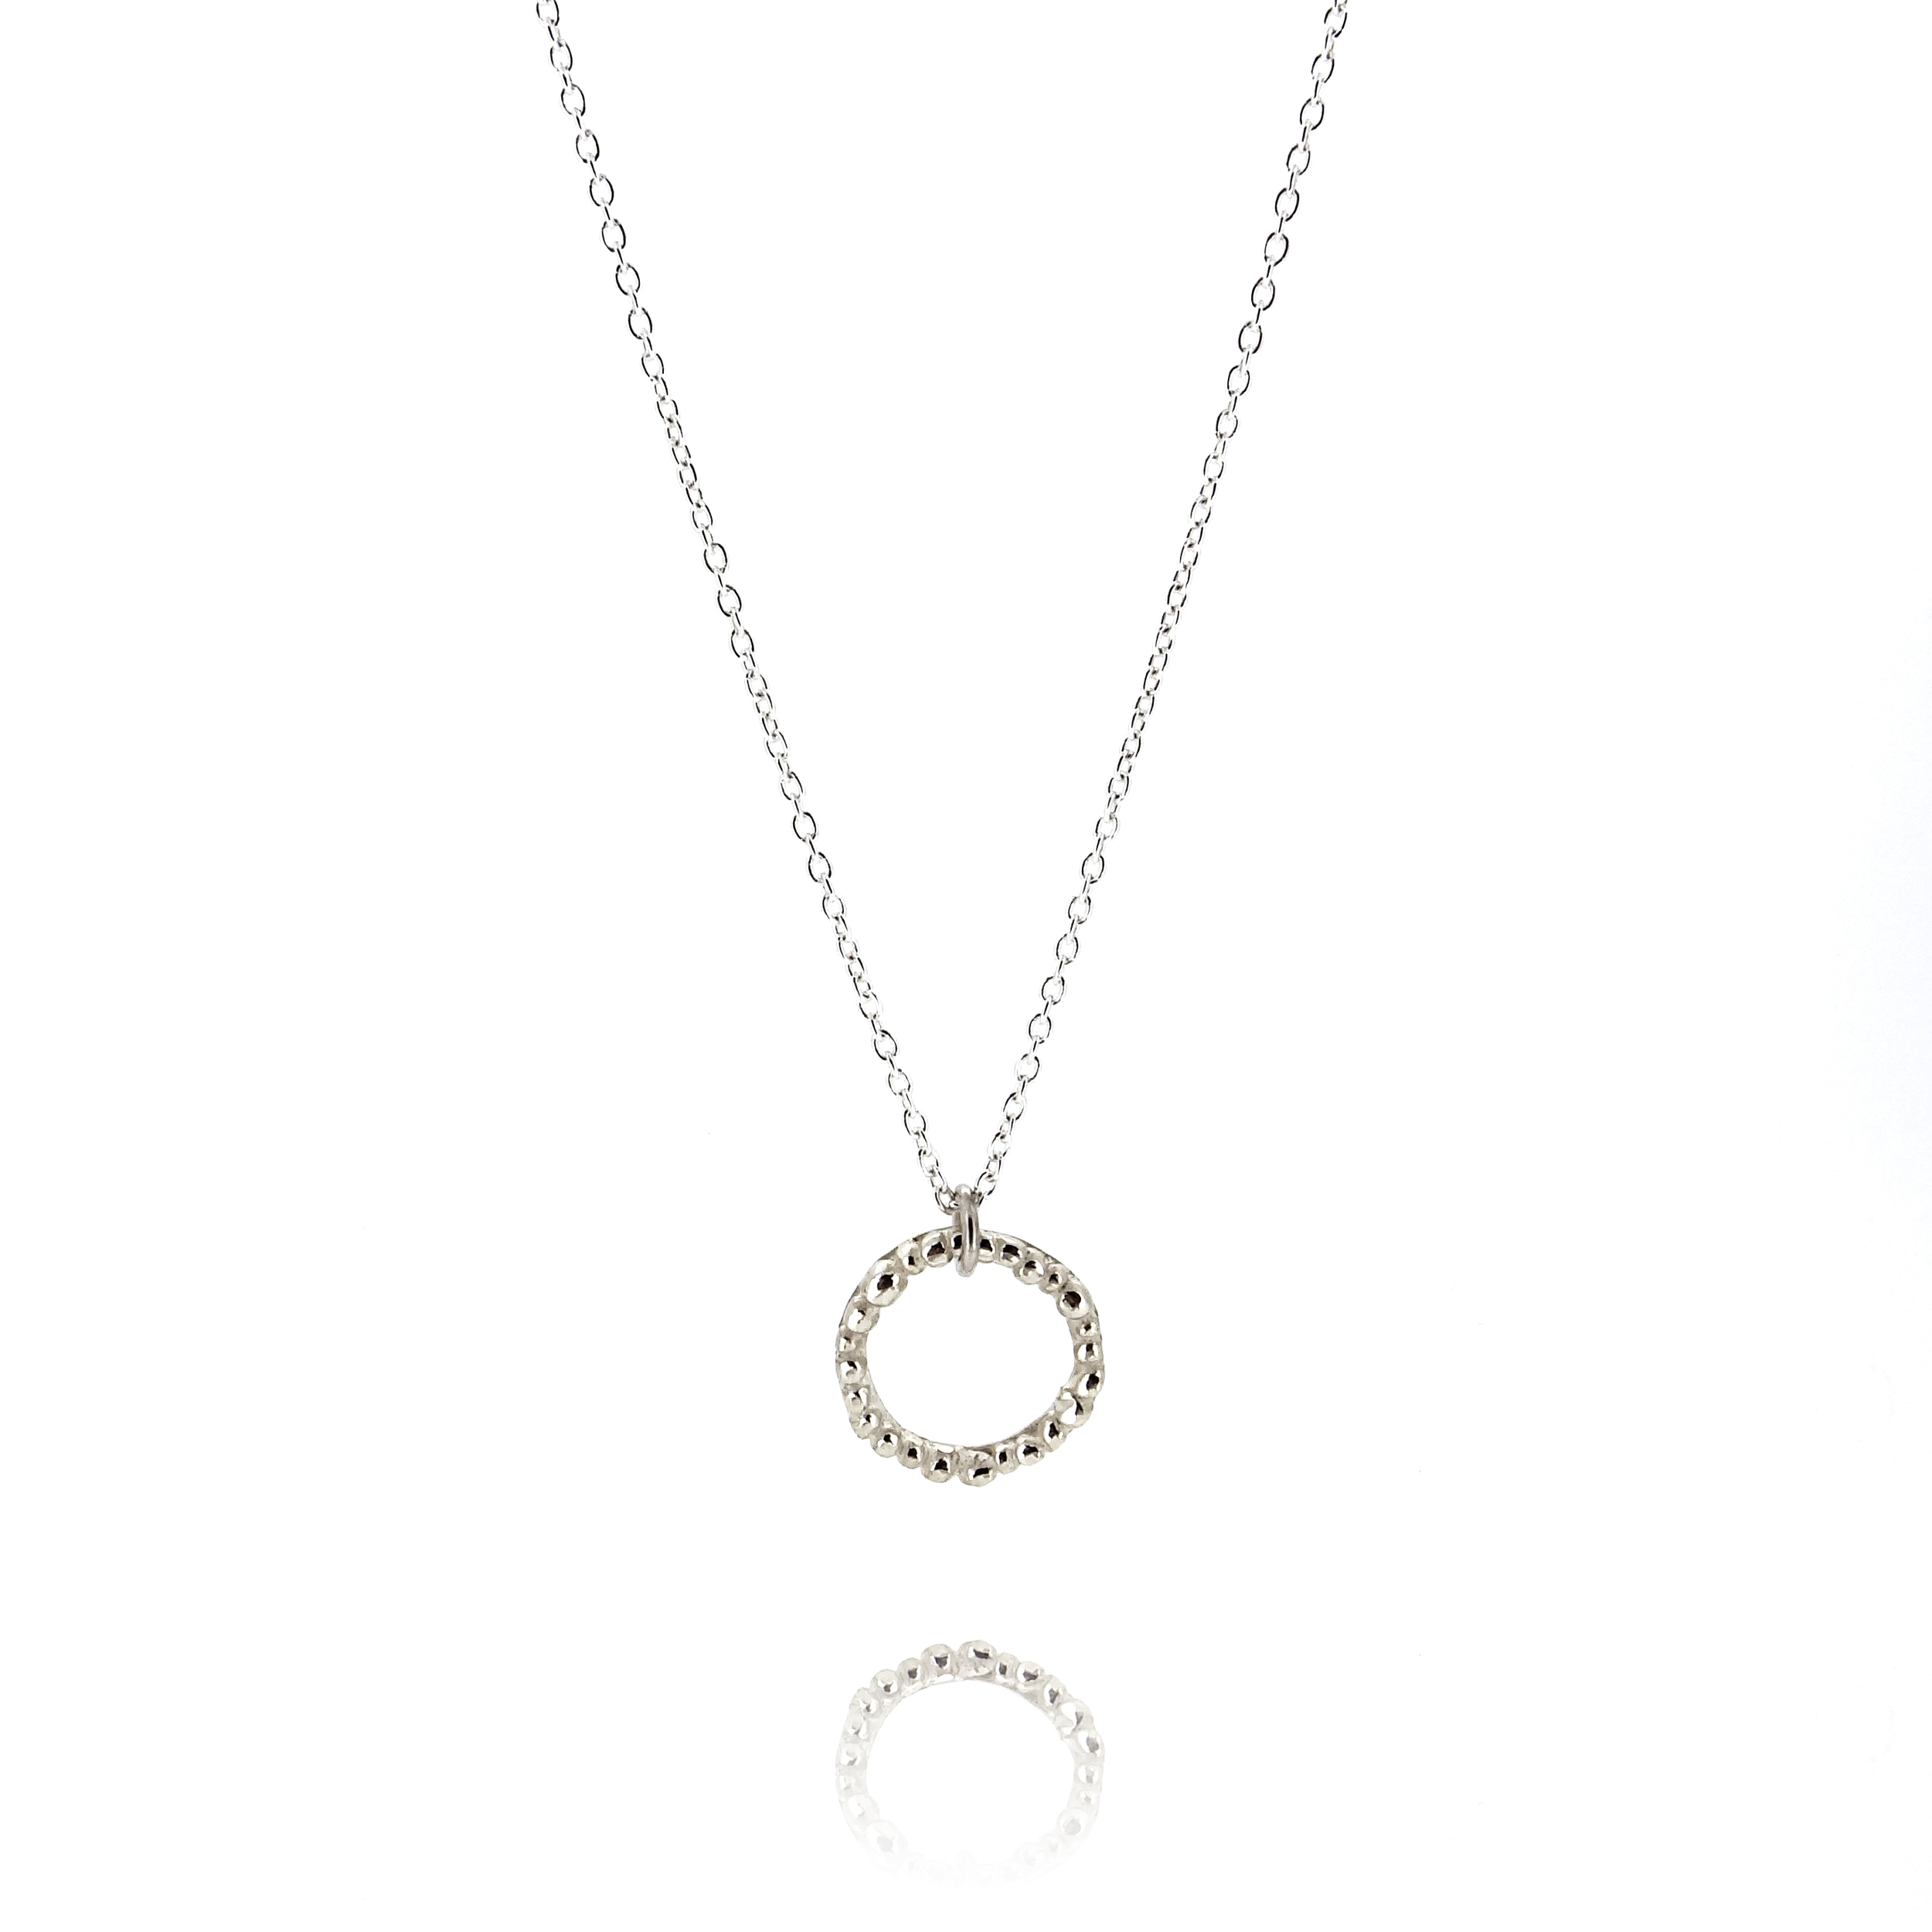 malcolm morris 1 silver necklace.jpg